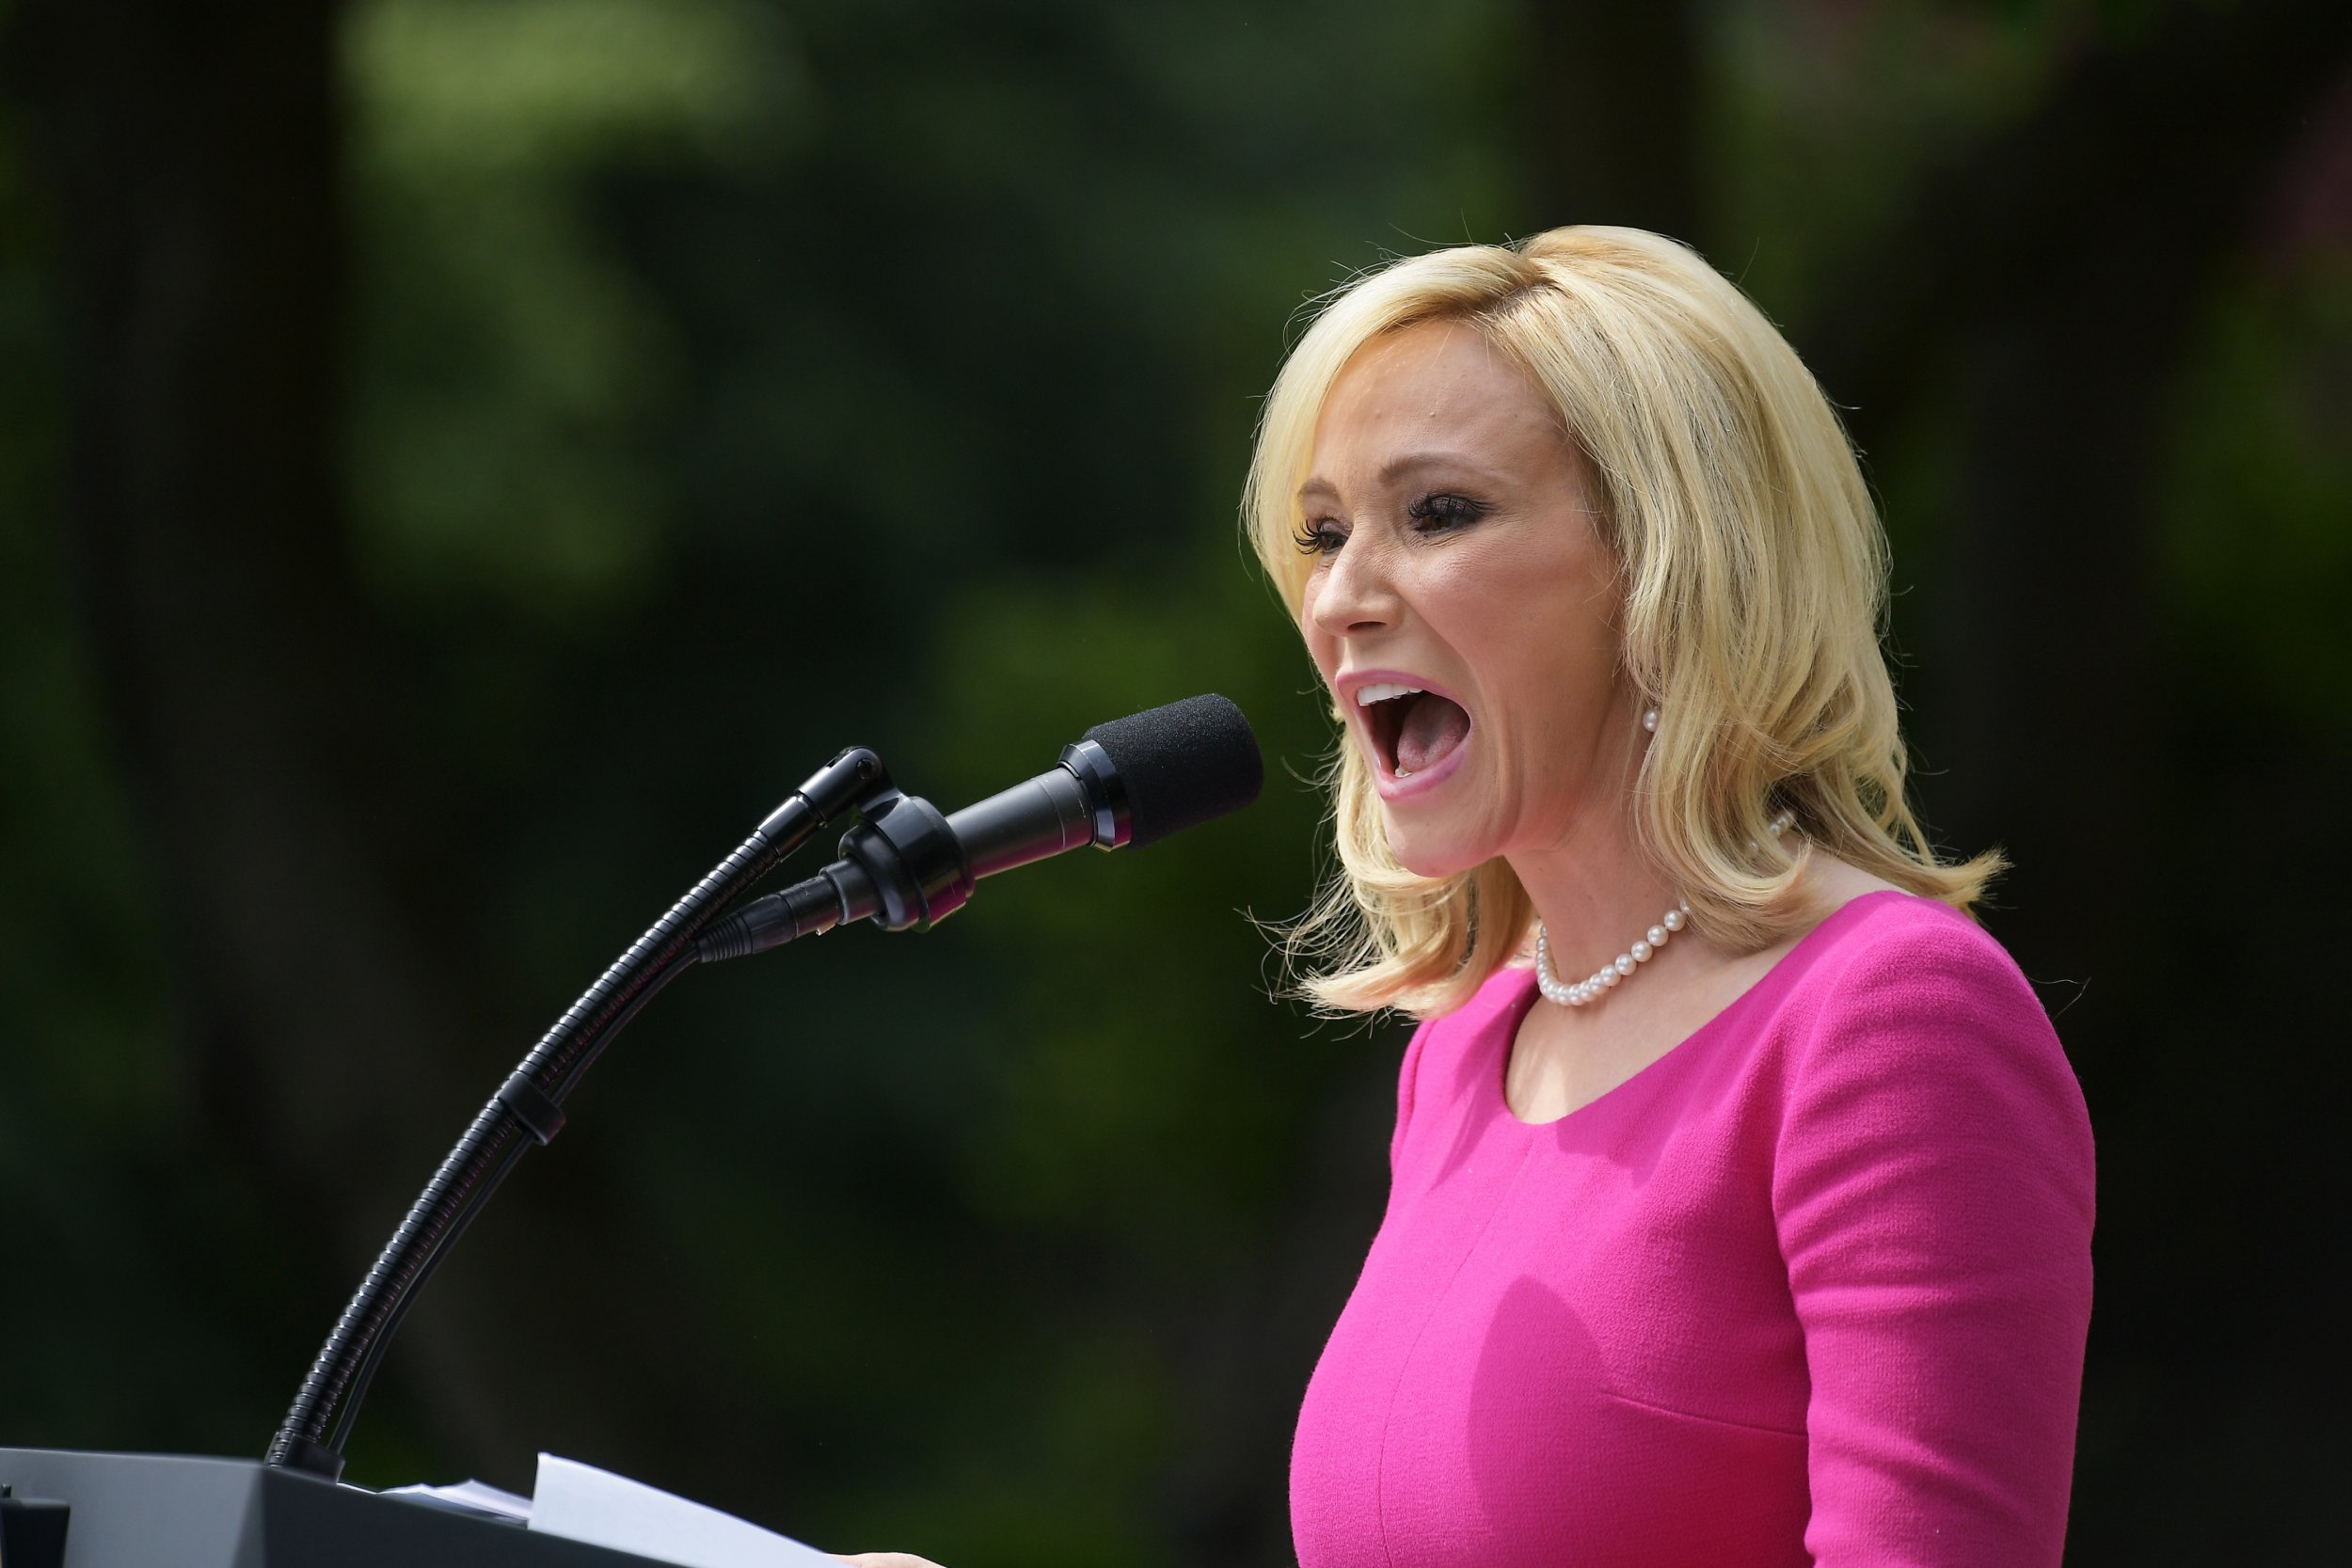 Trump's Spiritual Adviser: Send Me Your Salaries